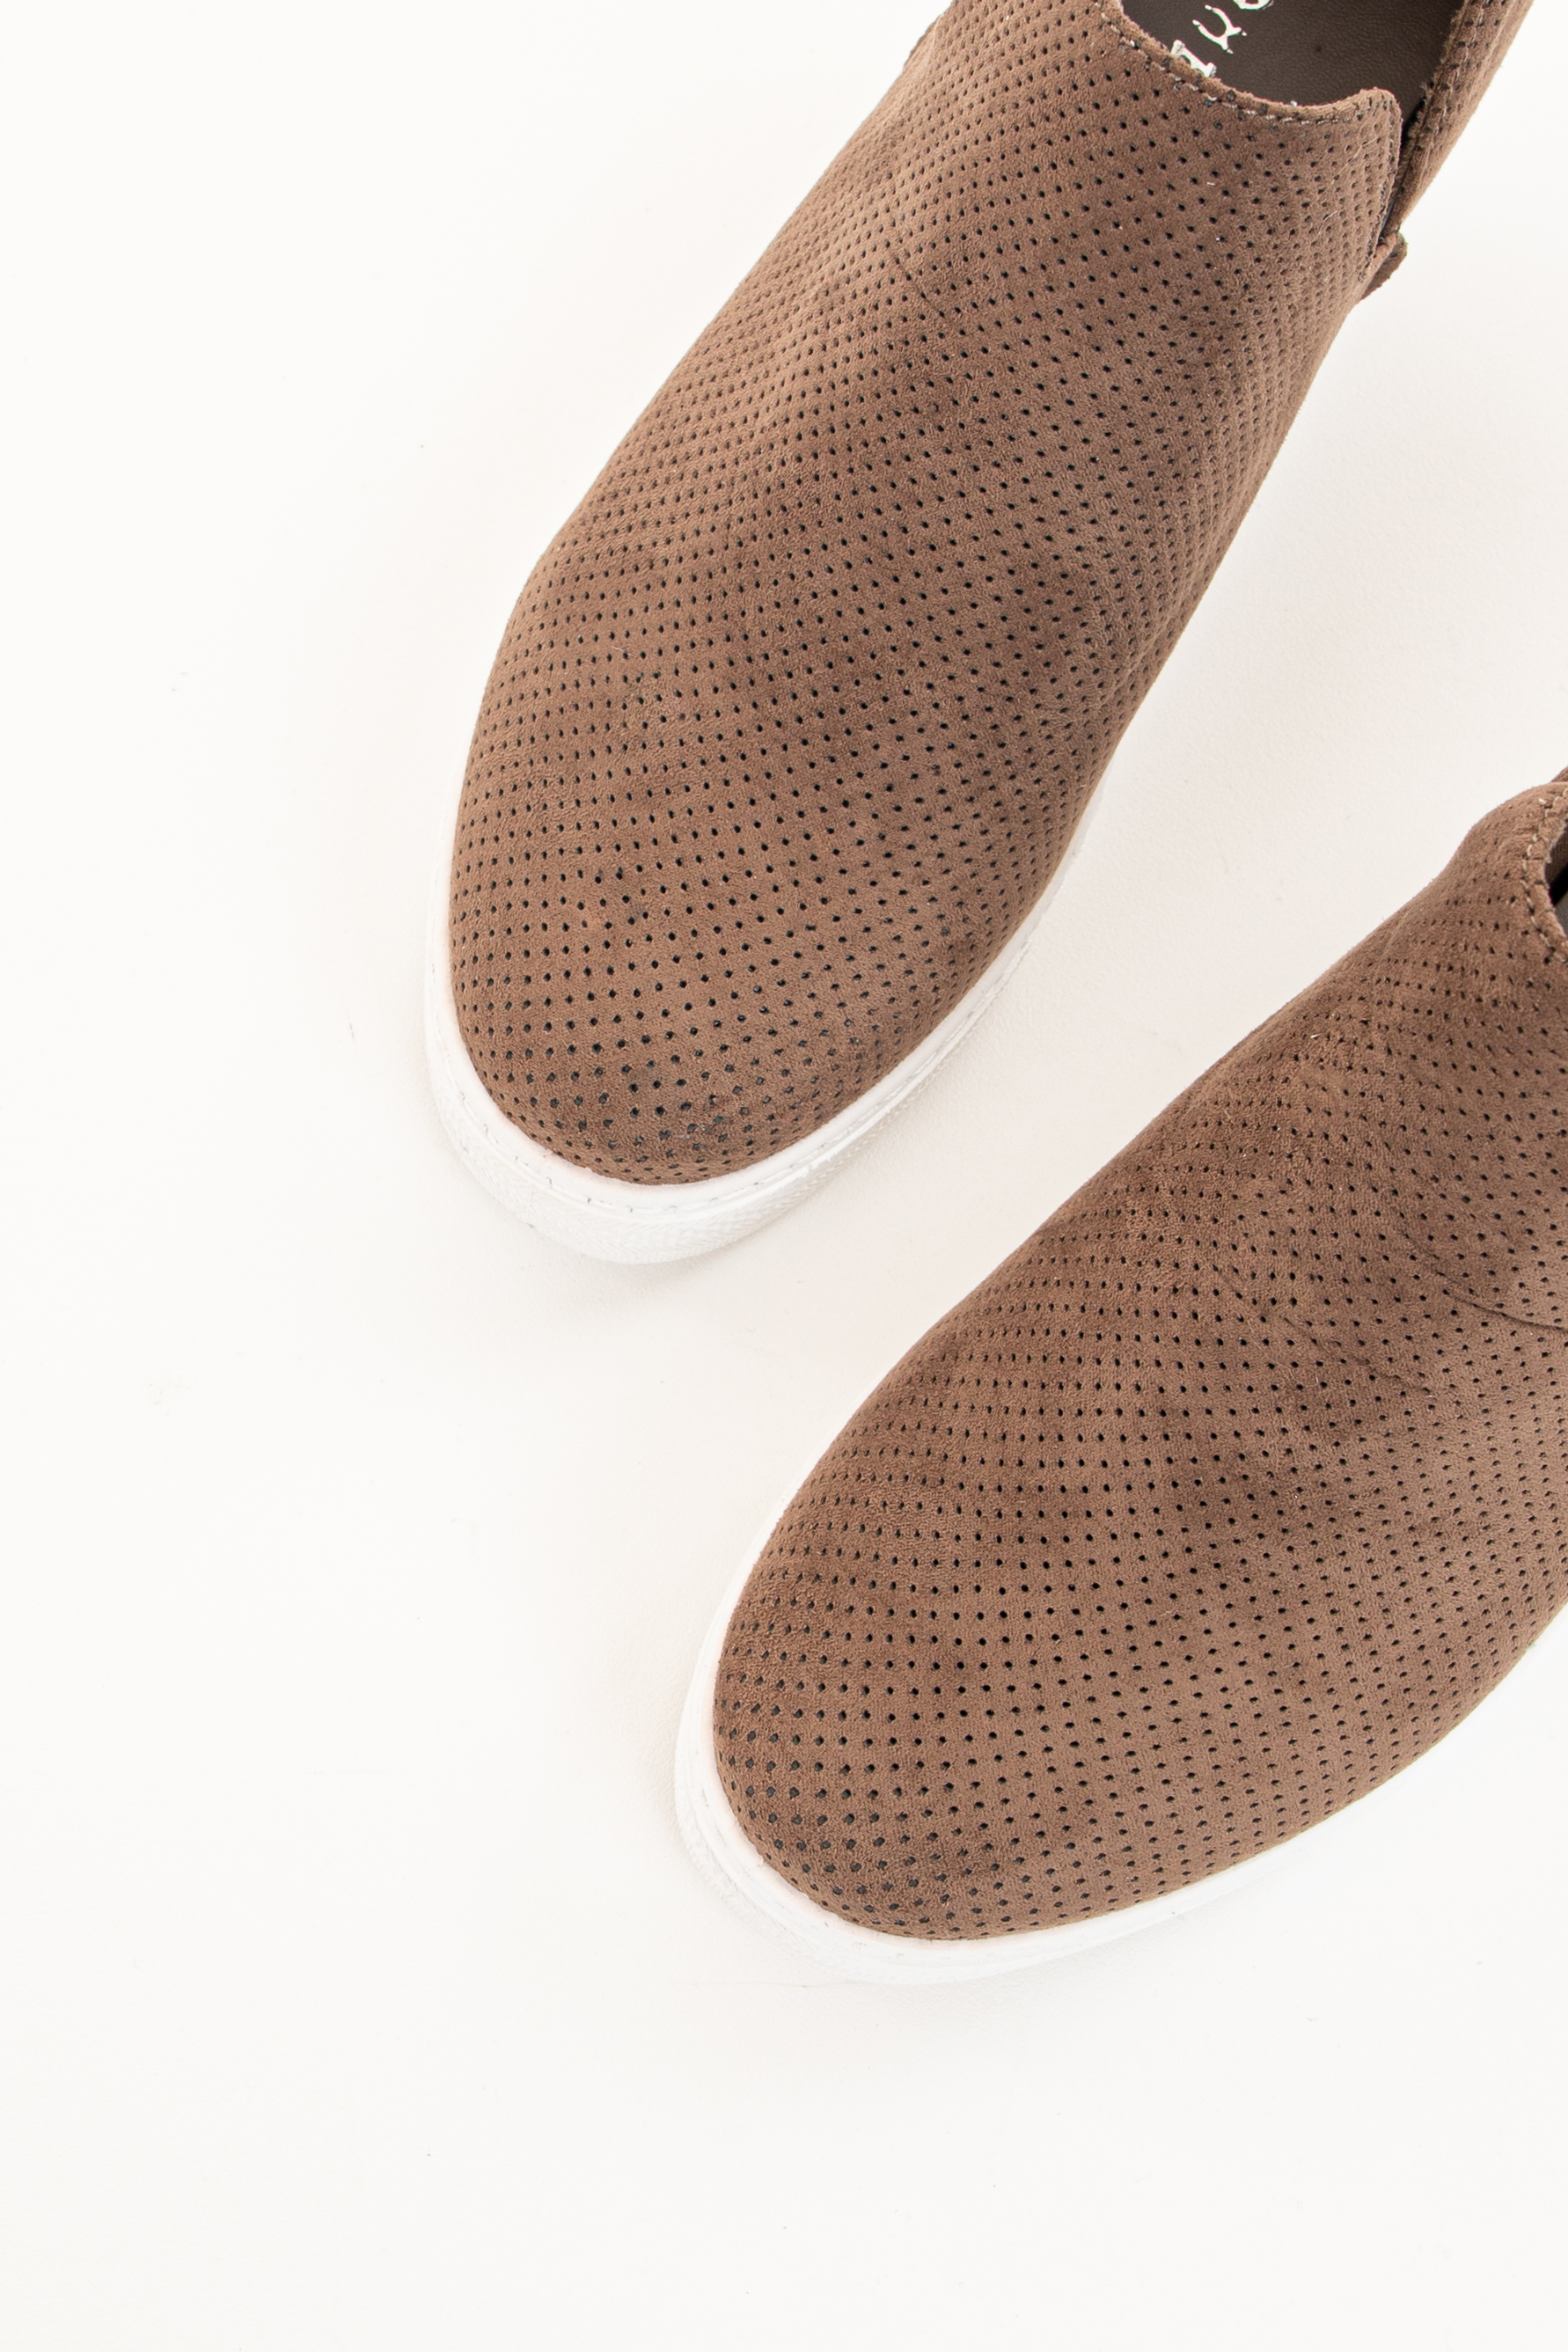 Chocolate Faux Suede Sneaker Wedge with Perforated Detail